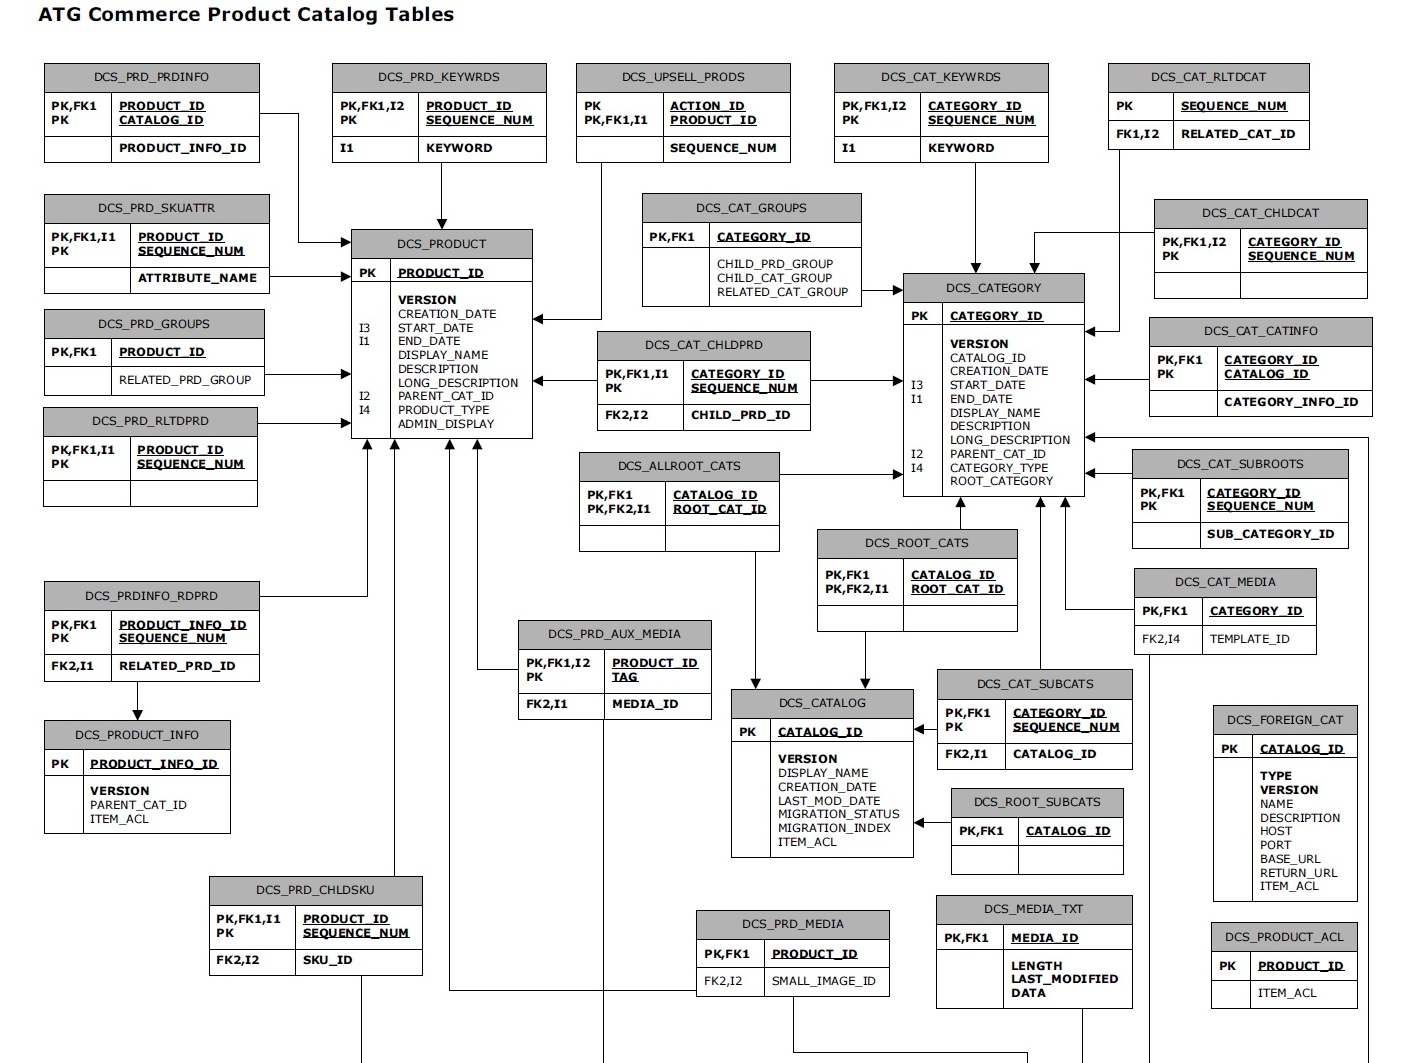 Tips From Sony Thomas: Atg Product Catalog Schema Er Diagram with regard to Er Schema